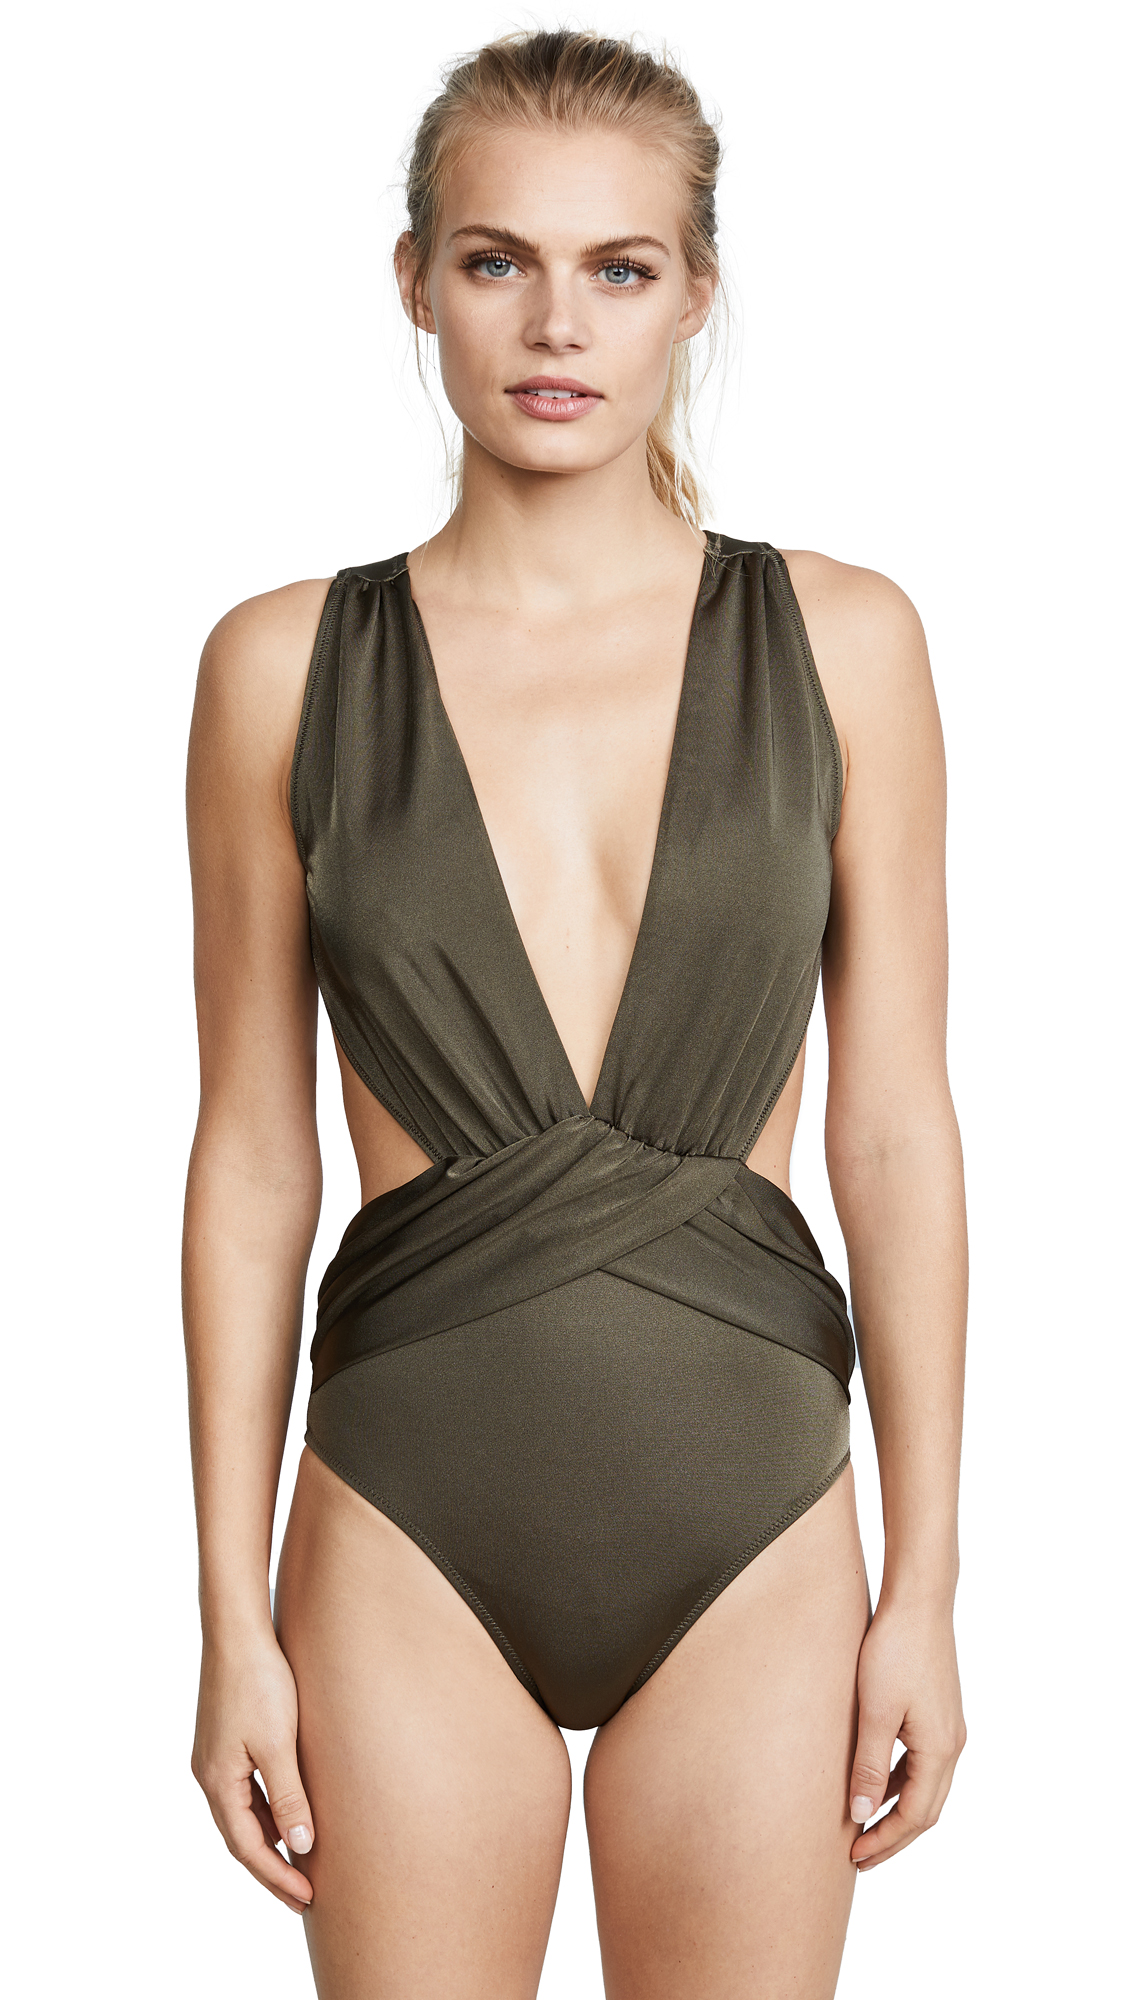 OYE Swimwear Elvira Daring One Piece In Safari